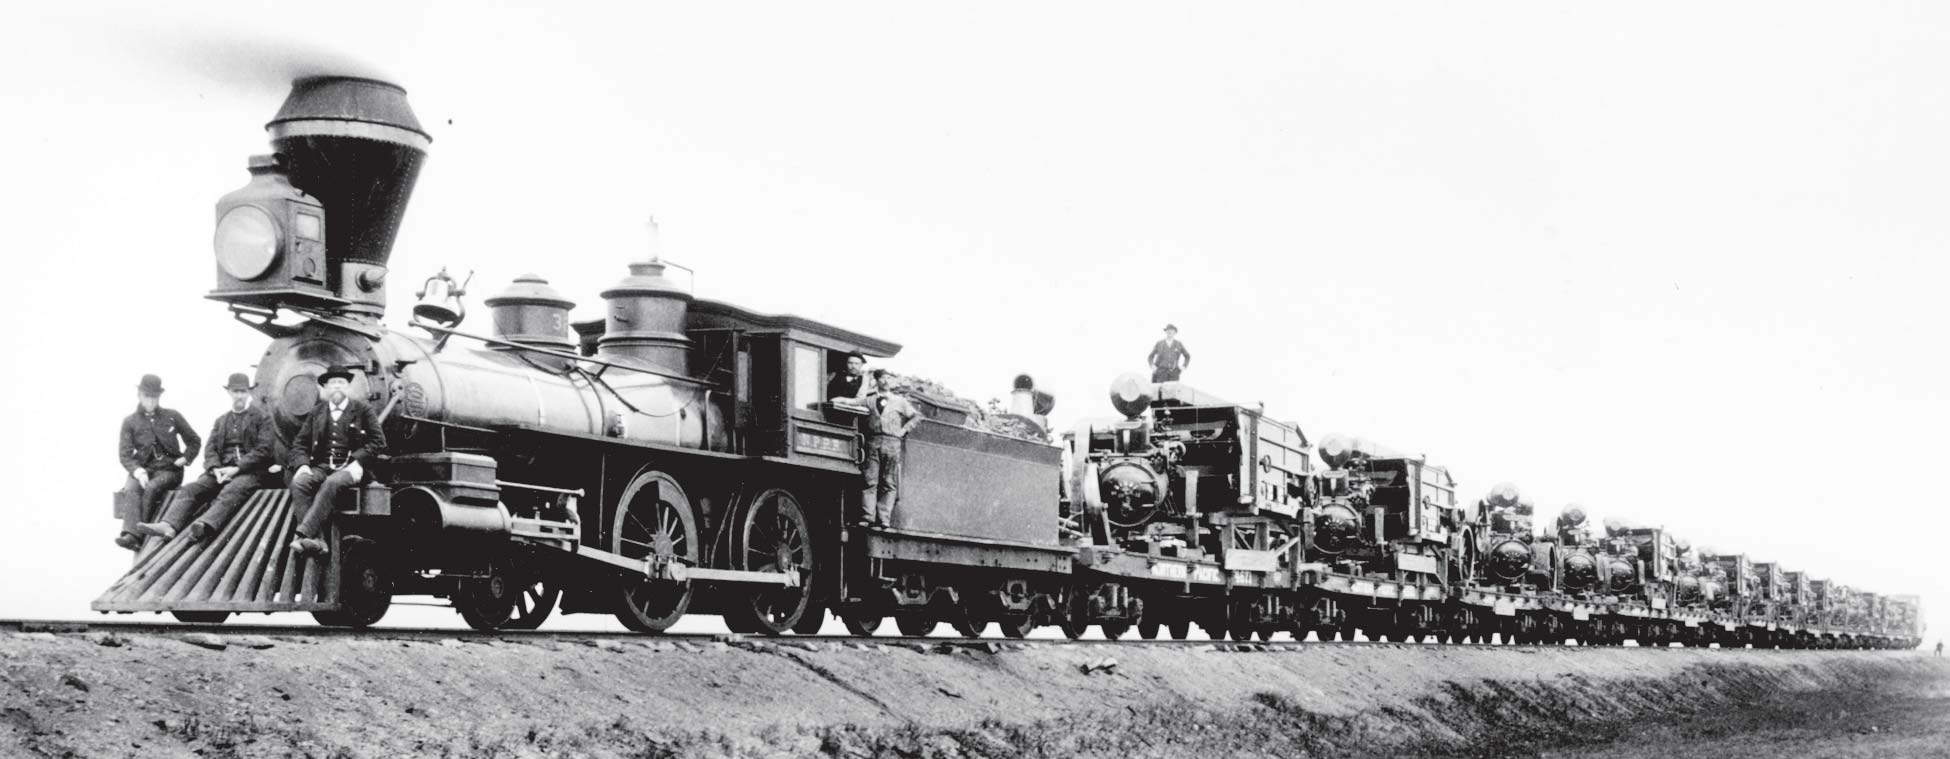 The Northern Pacific Railroad